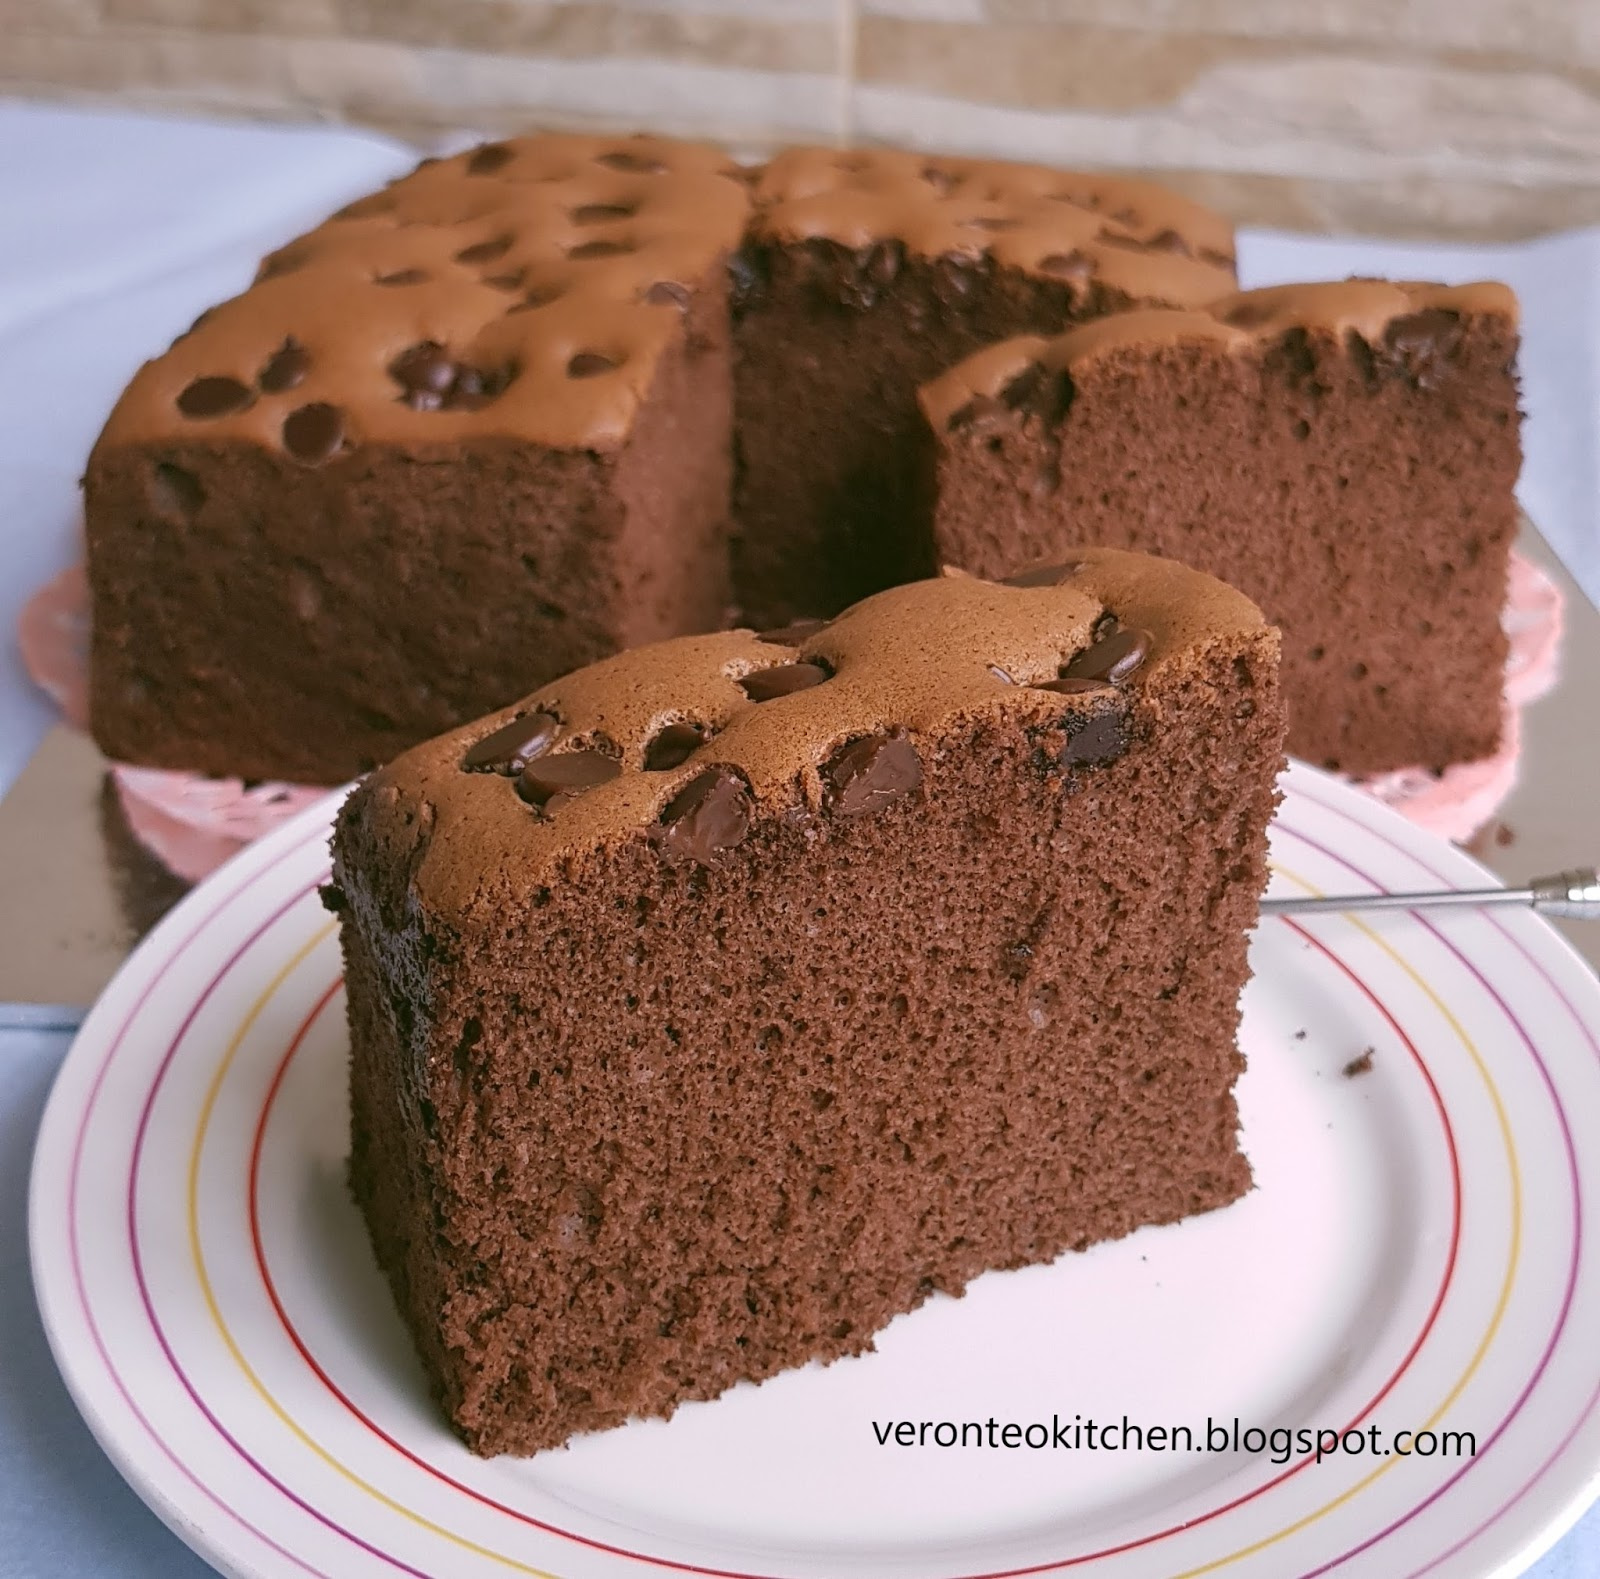 Veronicas kitchen inspired by this recipe i followed and made this cotton soft chocolate sponge cake today i topped with chocolate chips the cake turned out nice and soft forumfinder Gallery